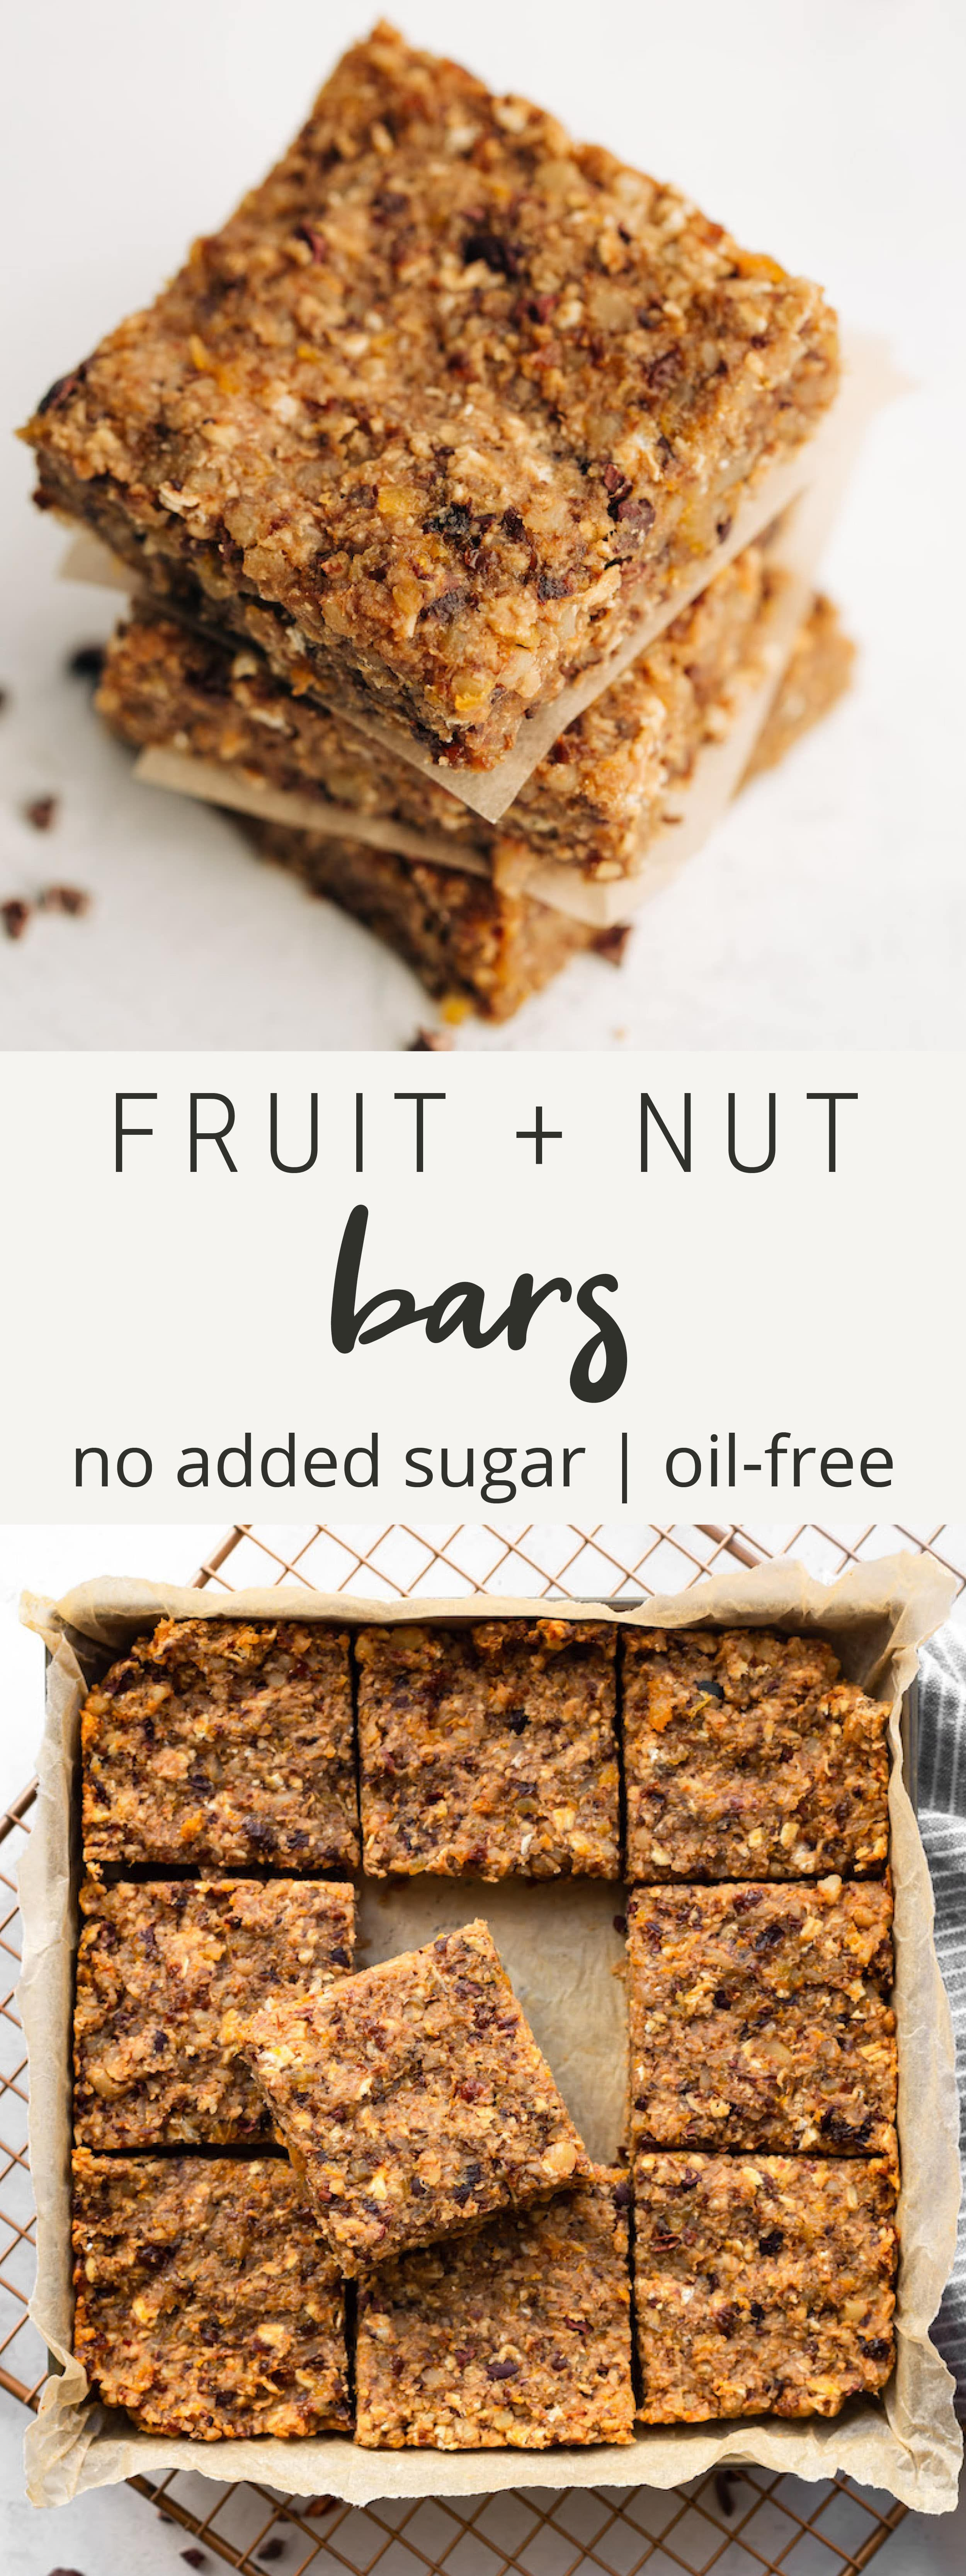 Fruit And Nut Bars Eating Bird Food Recipe Fruit And Nut Bars Easy Homemade Recipes Food